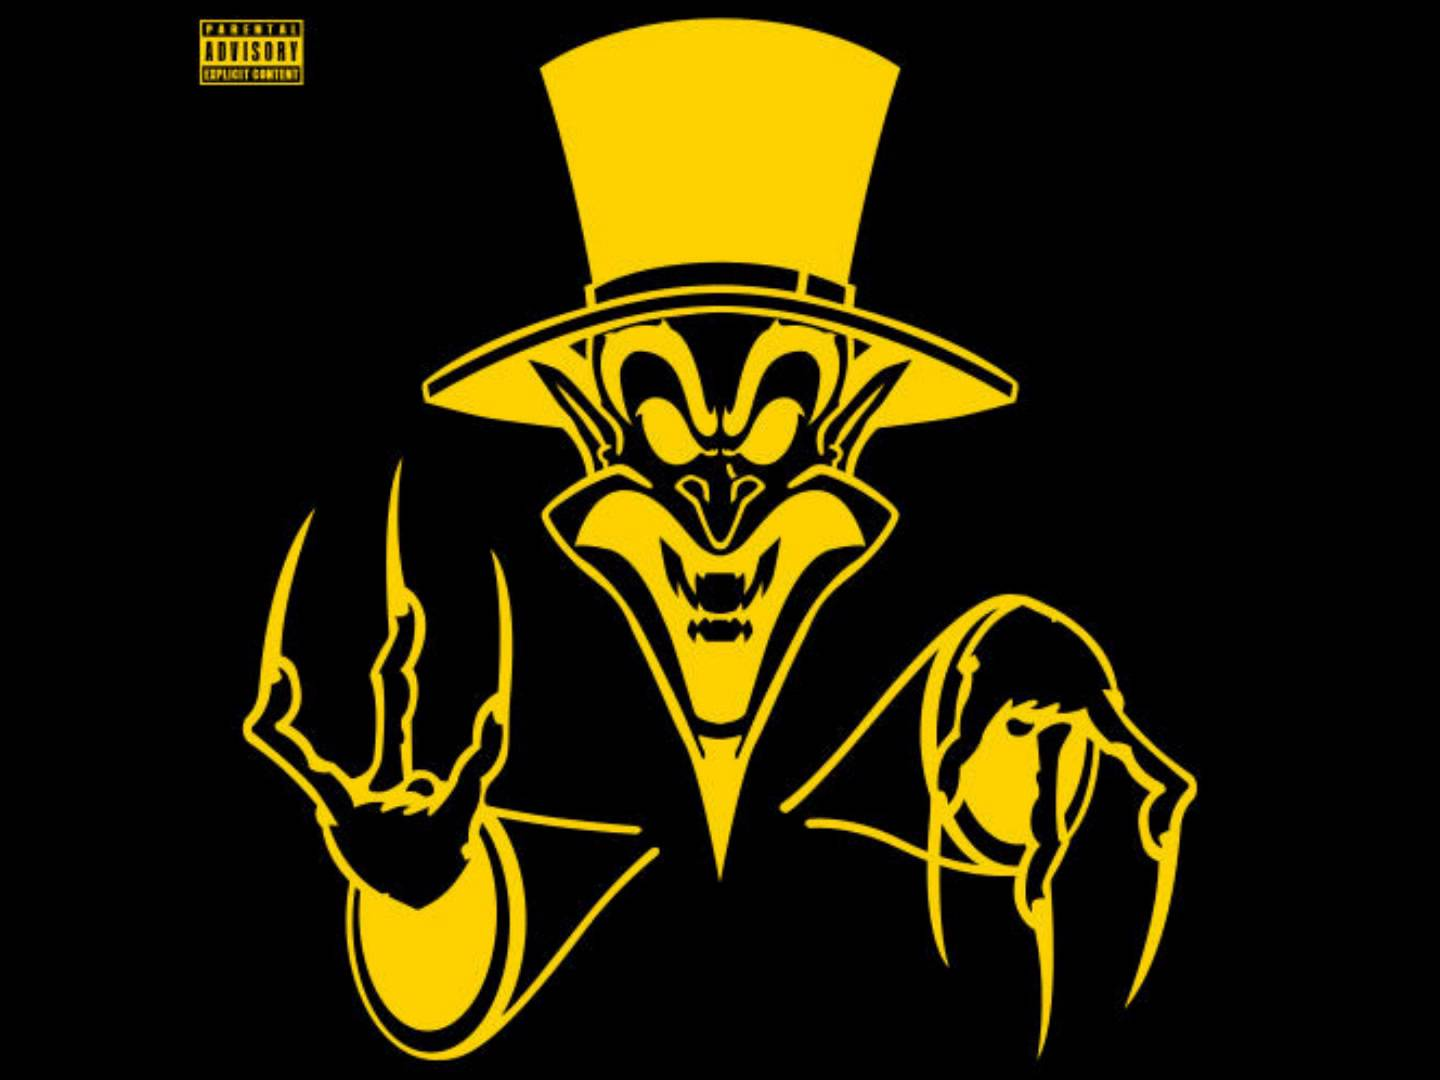 Icp Albums And Songs List Delightful all 13 insane clown posse albums, ranked - willamette week